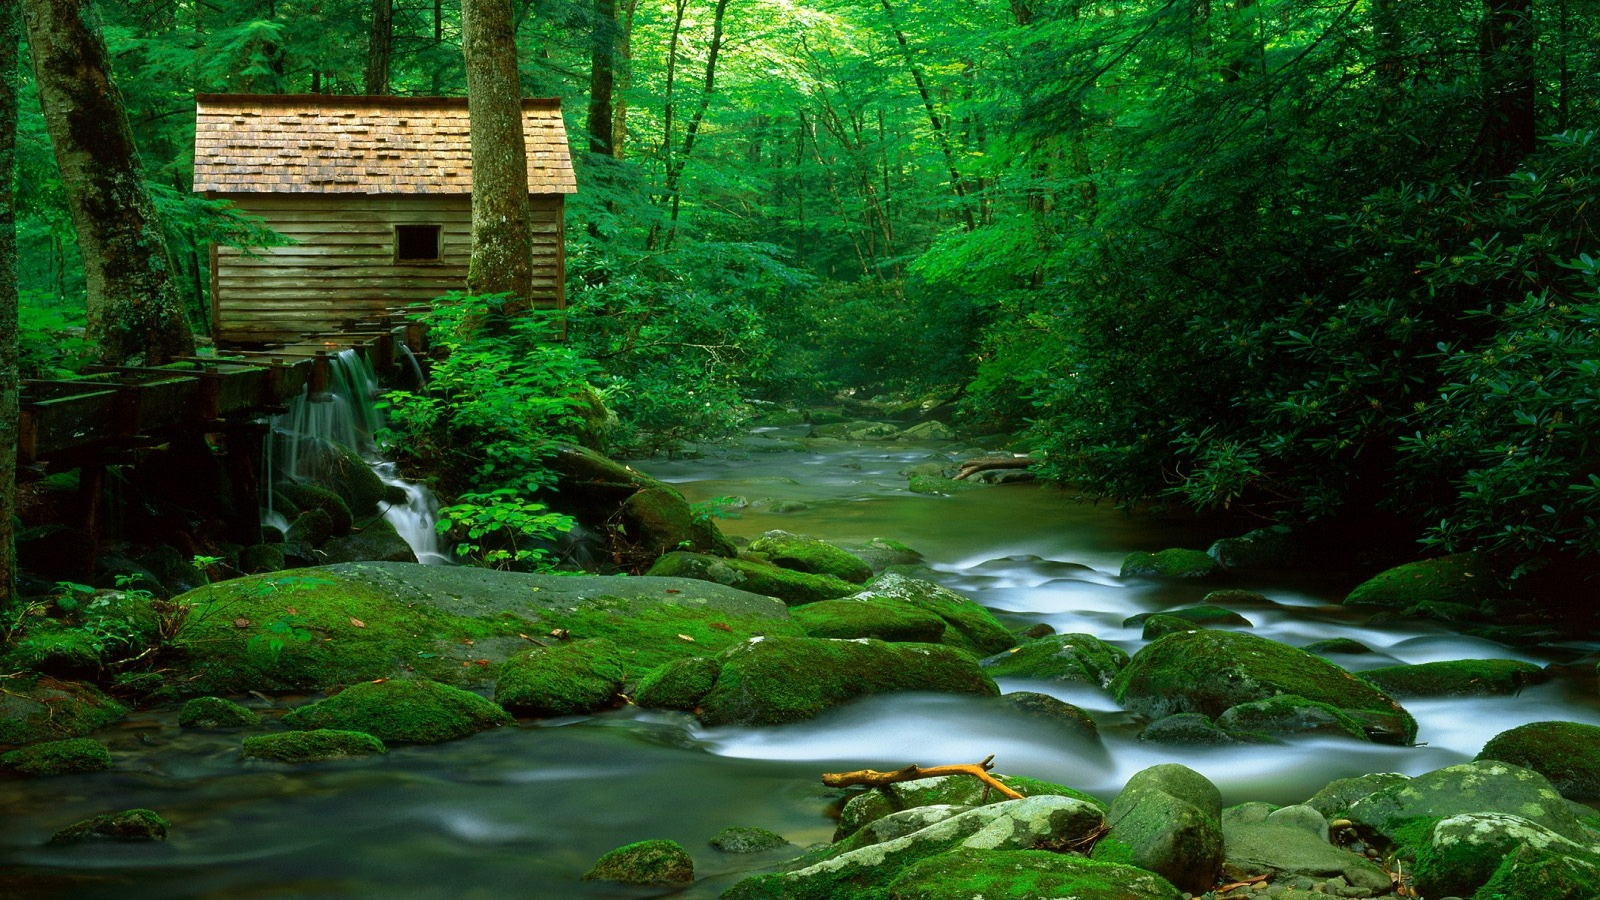 nature forest wallpaper,natural landscape,nature,body of water,stream,watercourse